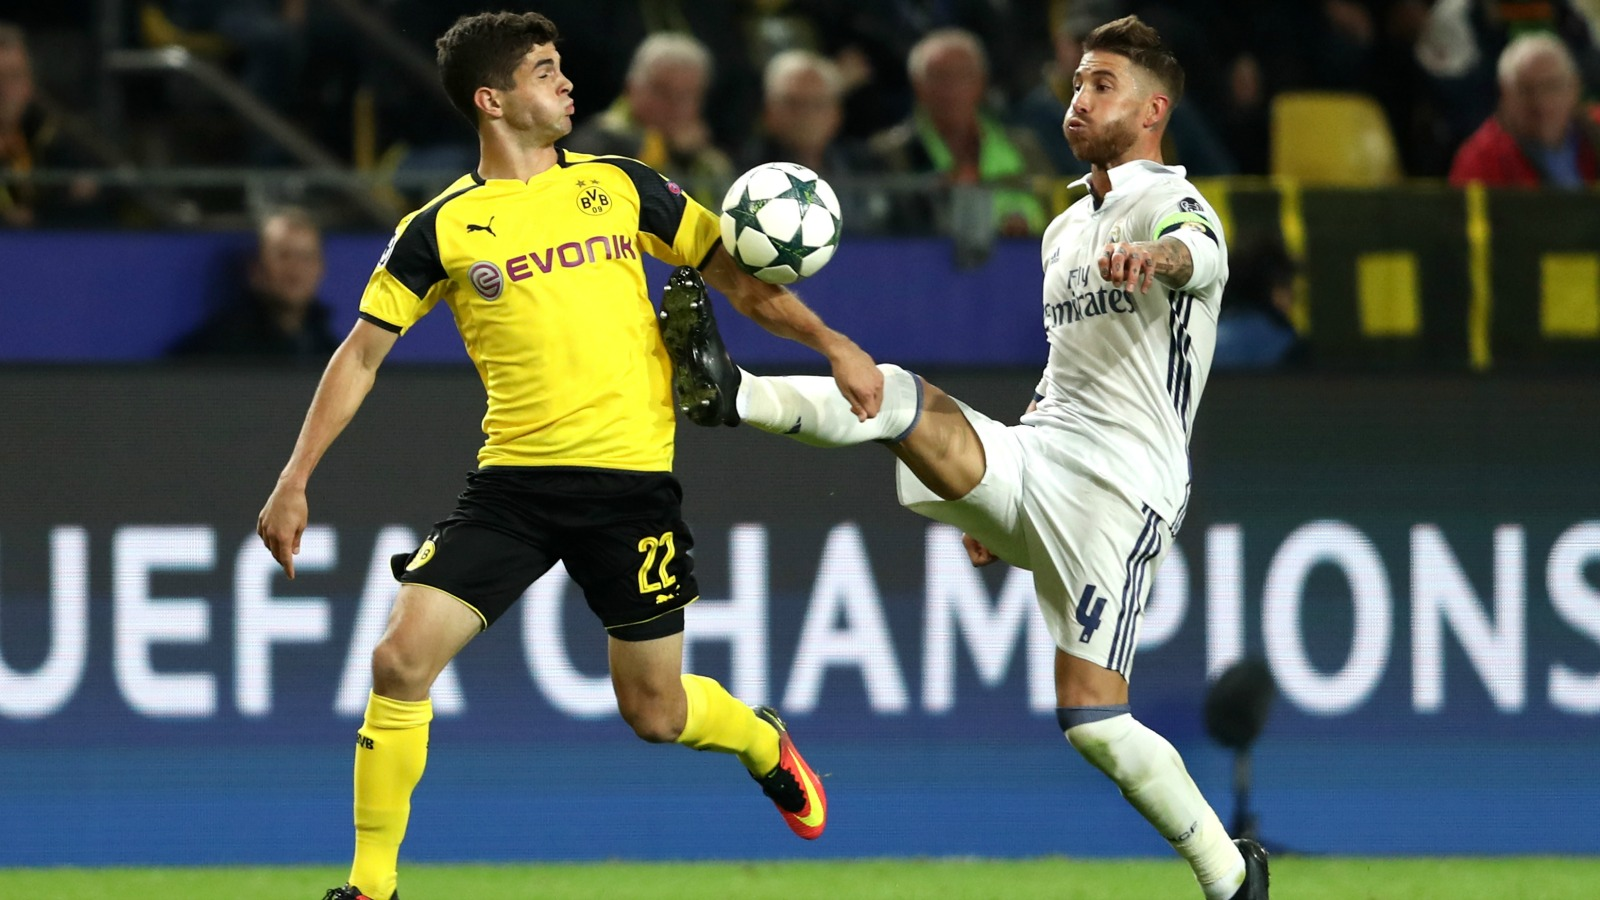 Christian Pulisic shined against one of the best teams in the world this time